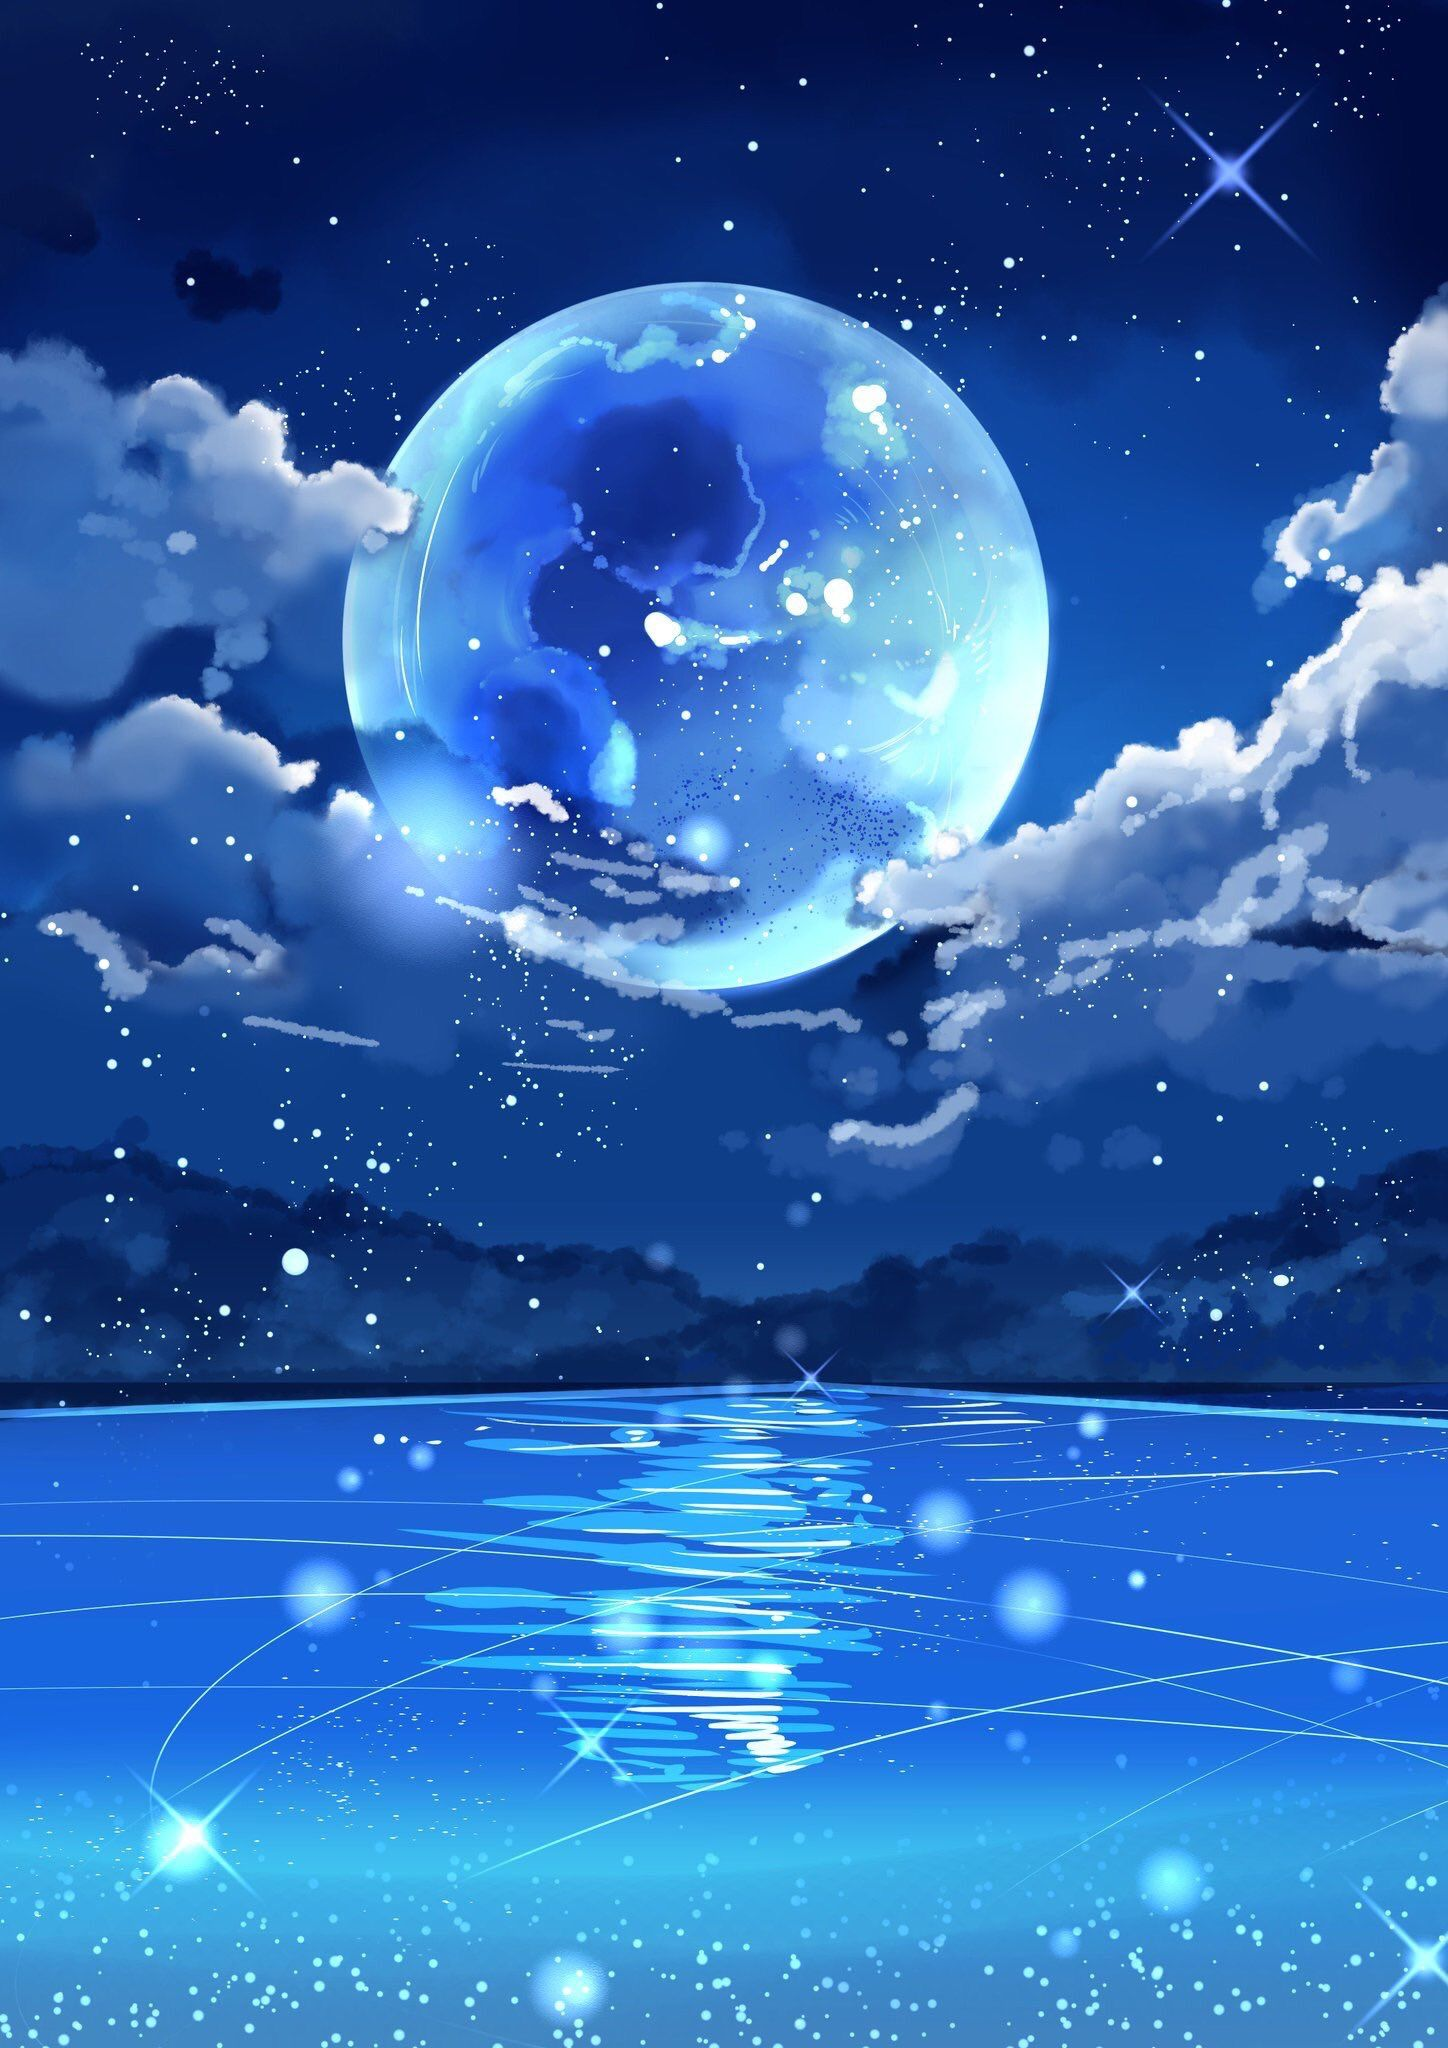 Pin By Jules On Painting Fantasy Art Landscapes Anime Scenery Beautiful Nature Wallpaper Fantasy anime moon wallpaper